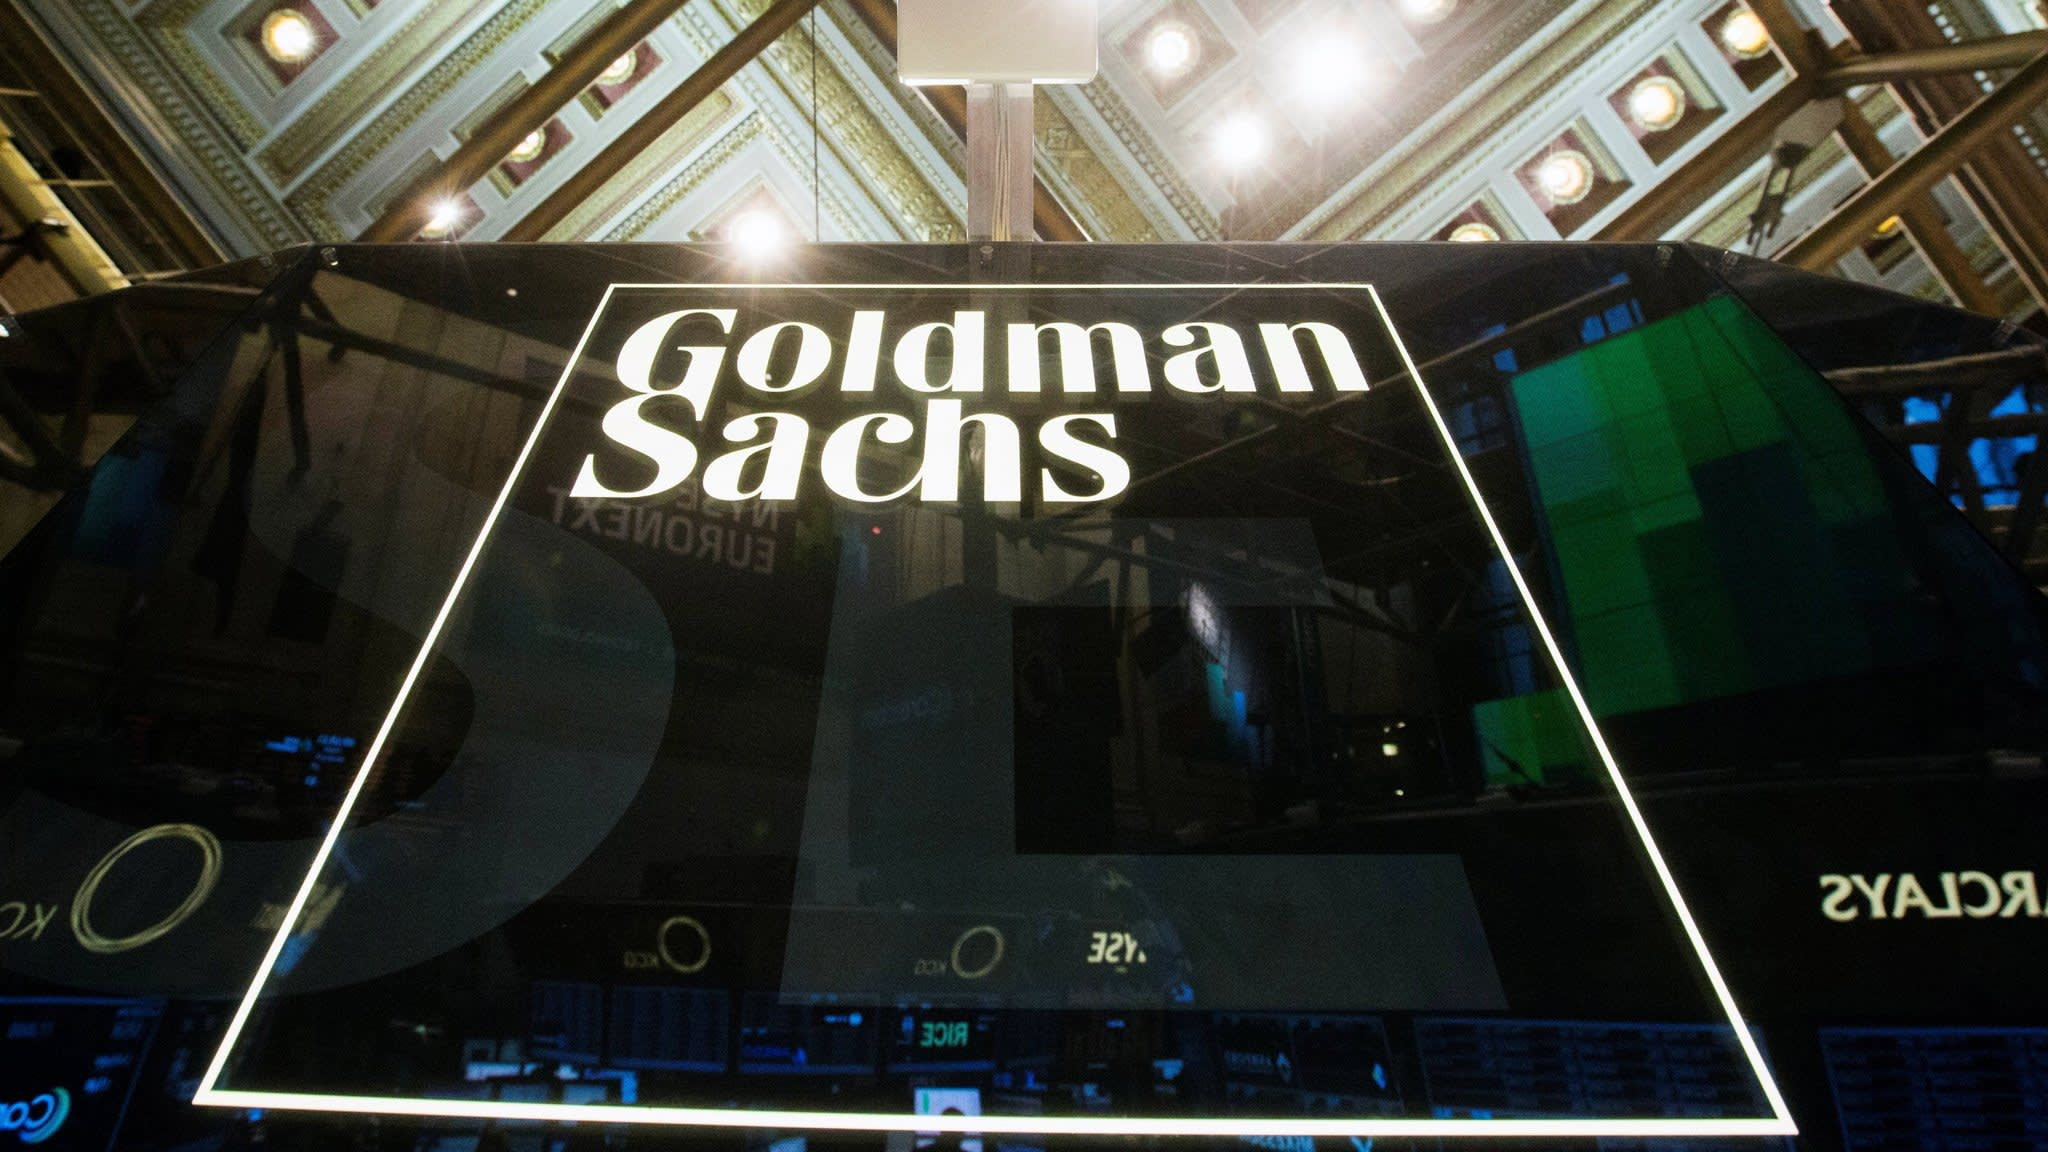 Goldman's business culture criticised by US officials